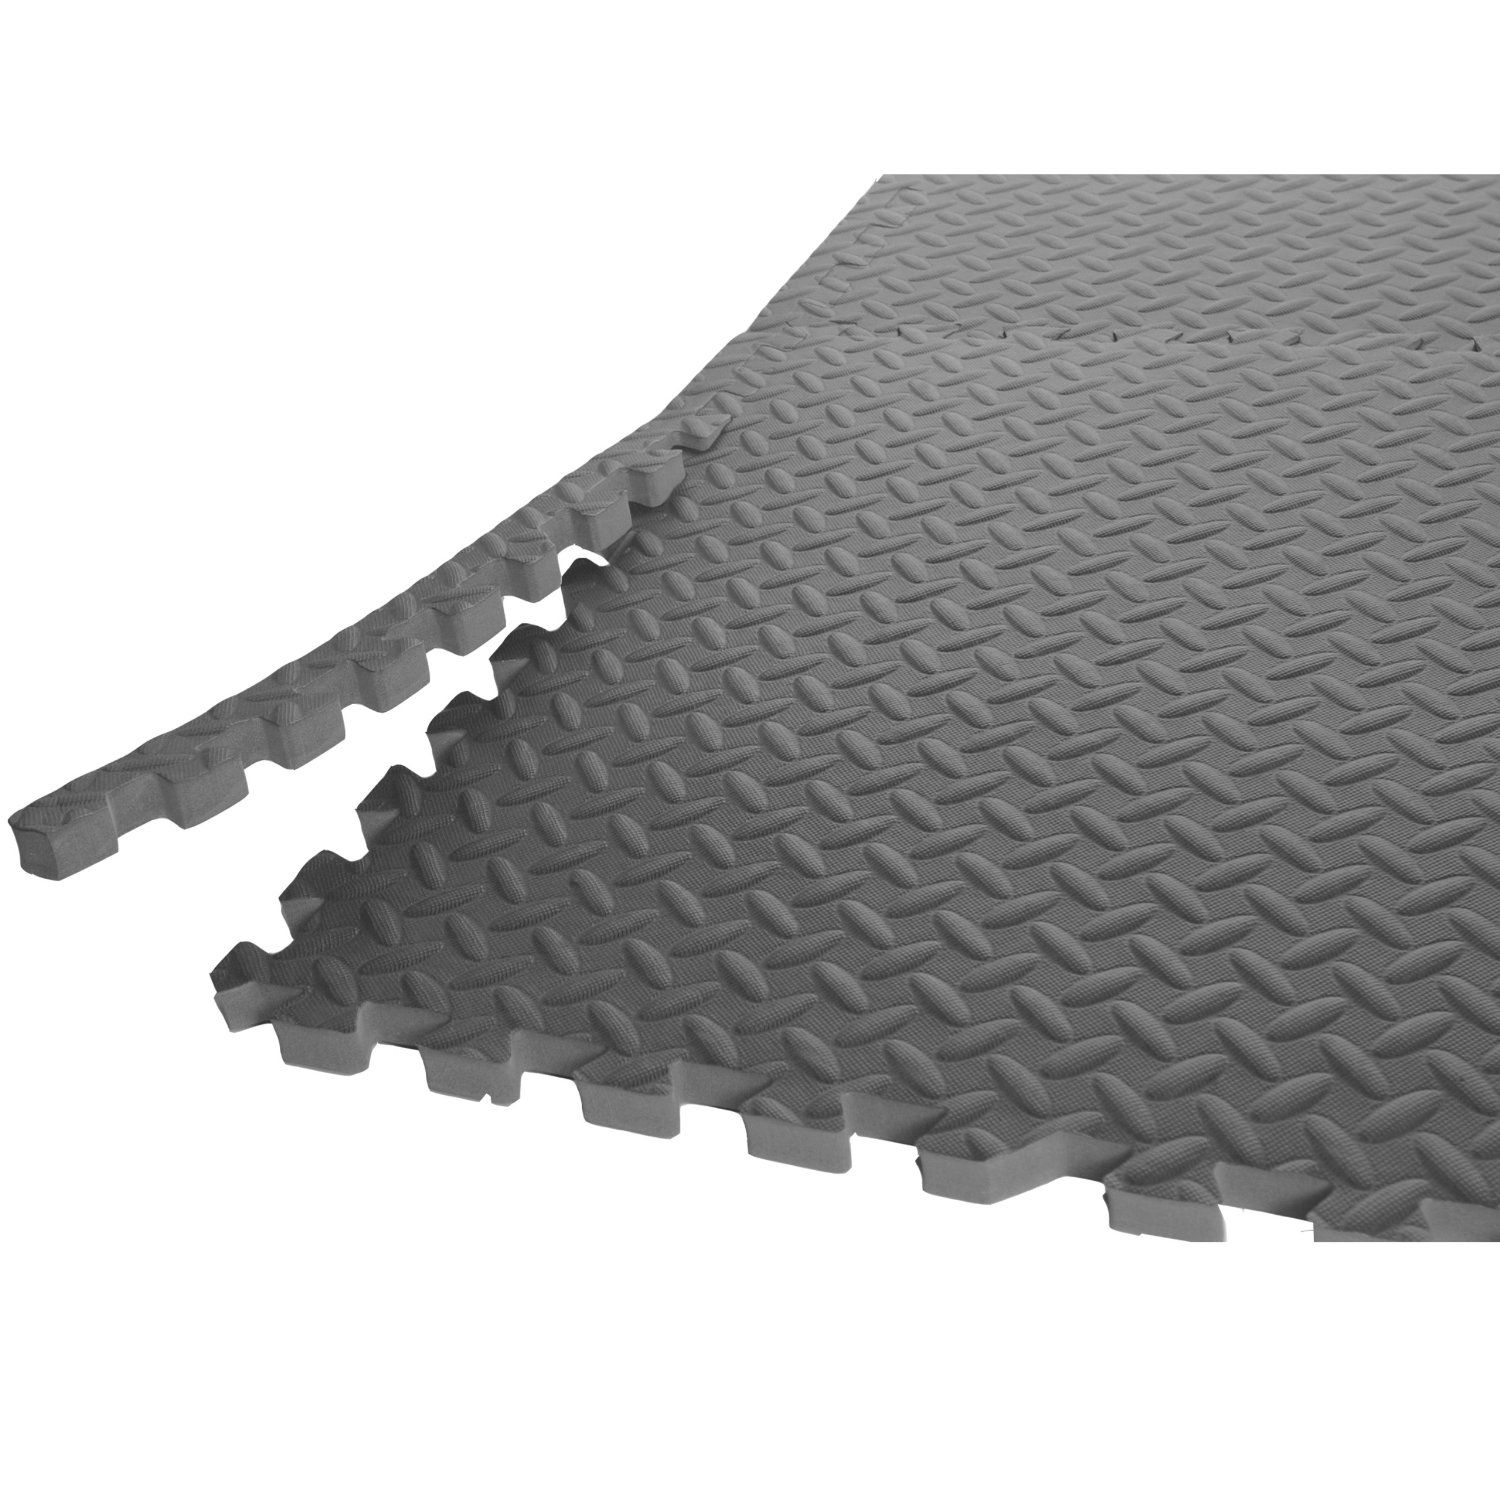 Rubber floor mats cheap - Economy Rubber Garage Gym Flooring Tiles For A Garage Gym Also Try Stall Mats For